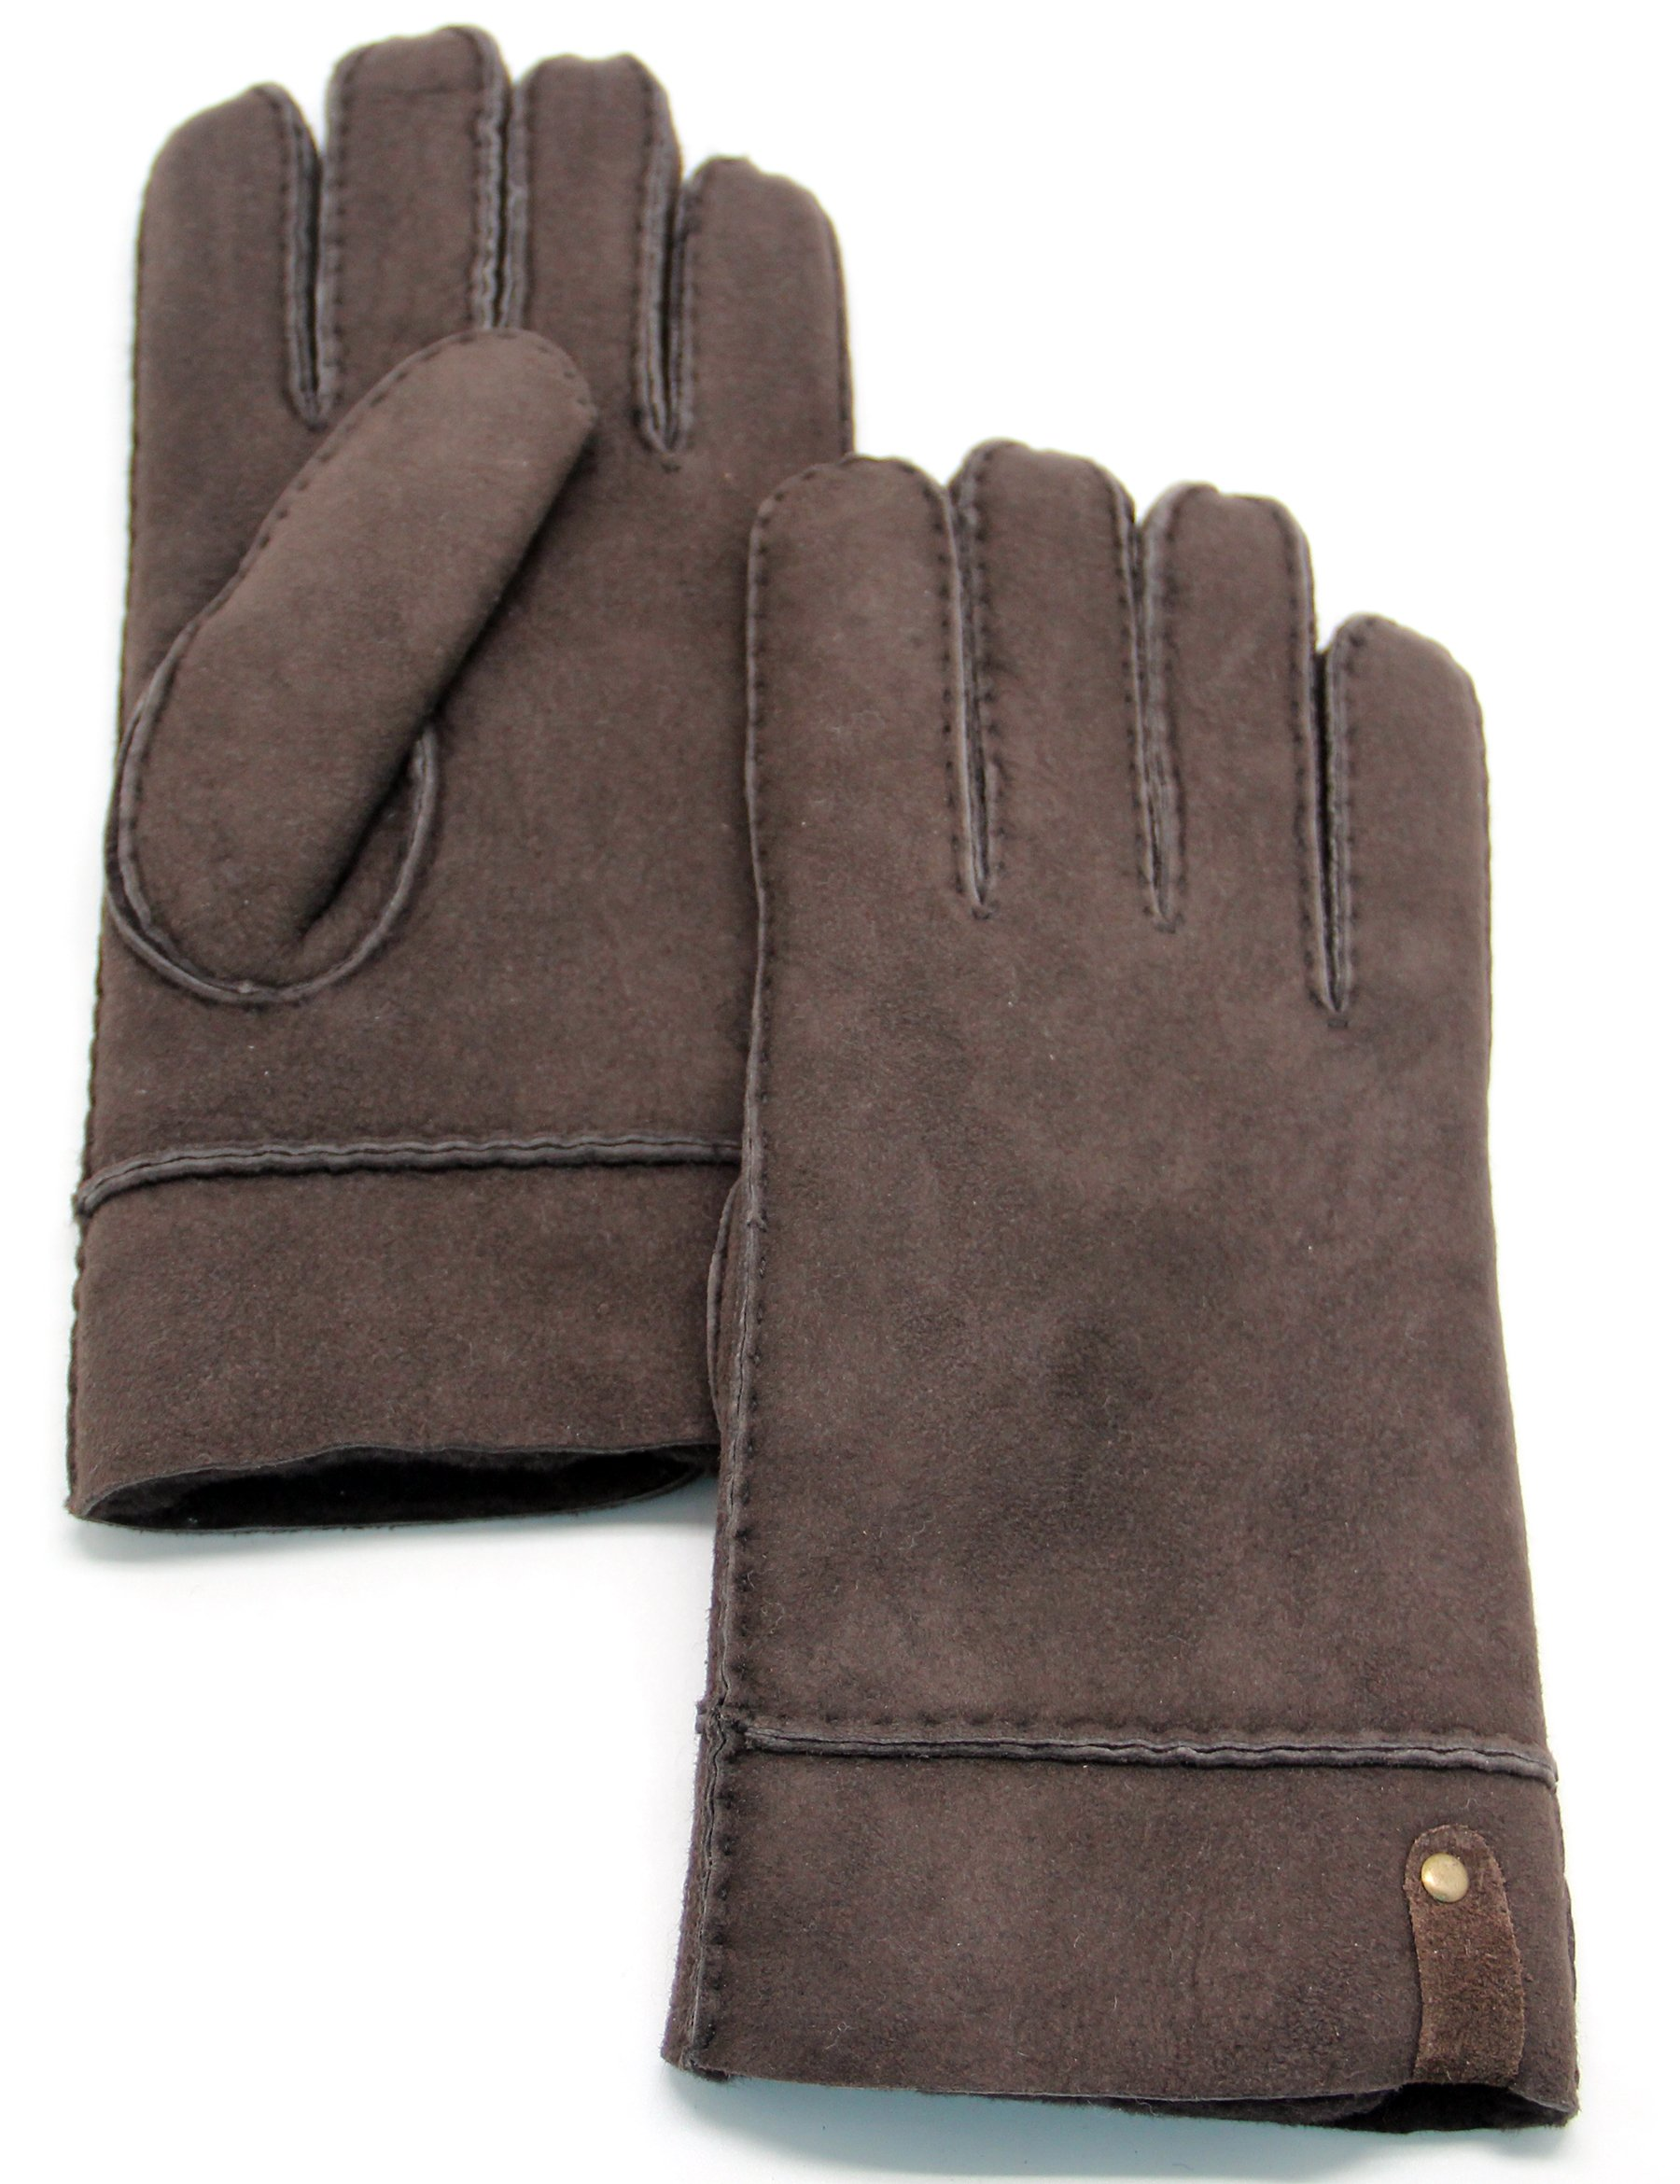 YISEVEN Men's Merino Rugged sheepskin Shearling Leather Gloves Plain Flat Design Soft Thick Furry Fur Lined Warm Heated Lining Flip Cuffs for Winter Dress Driving Work Xmas Gifts, Dark Brown Small